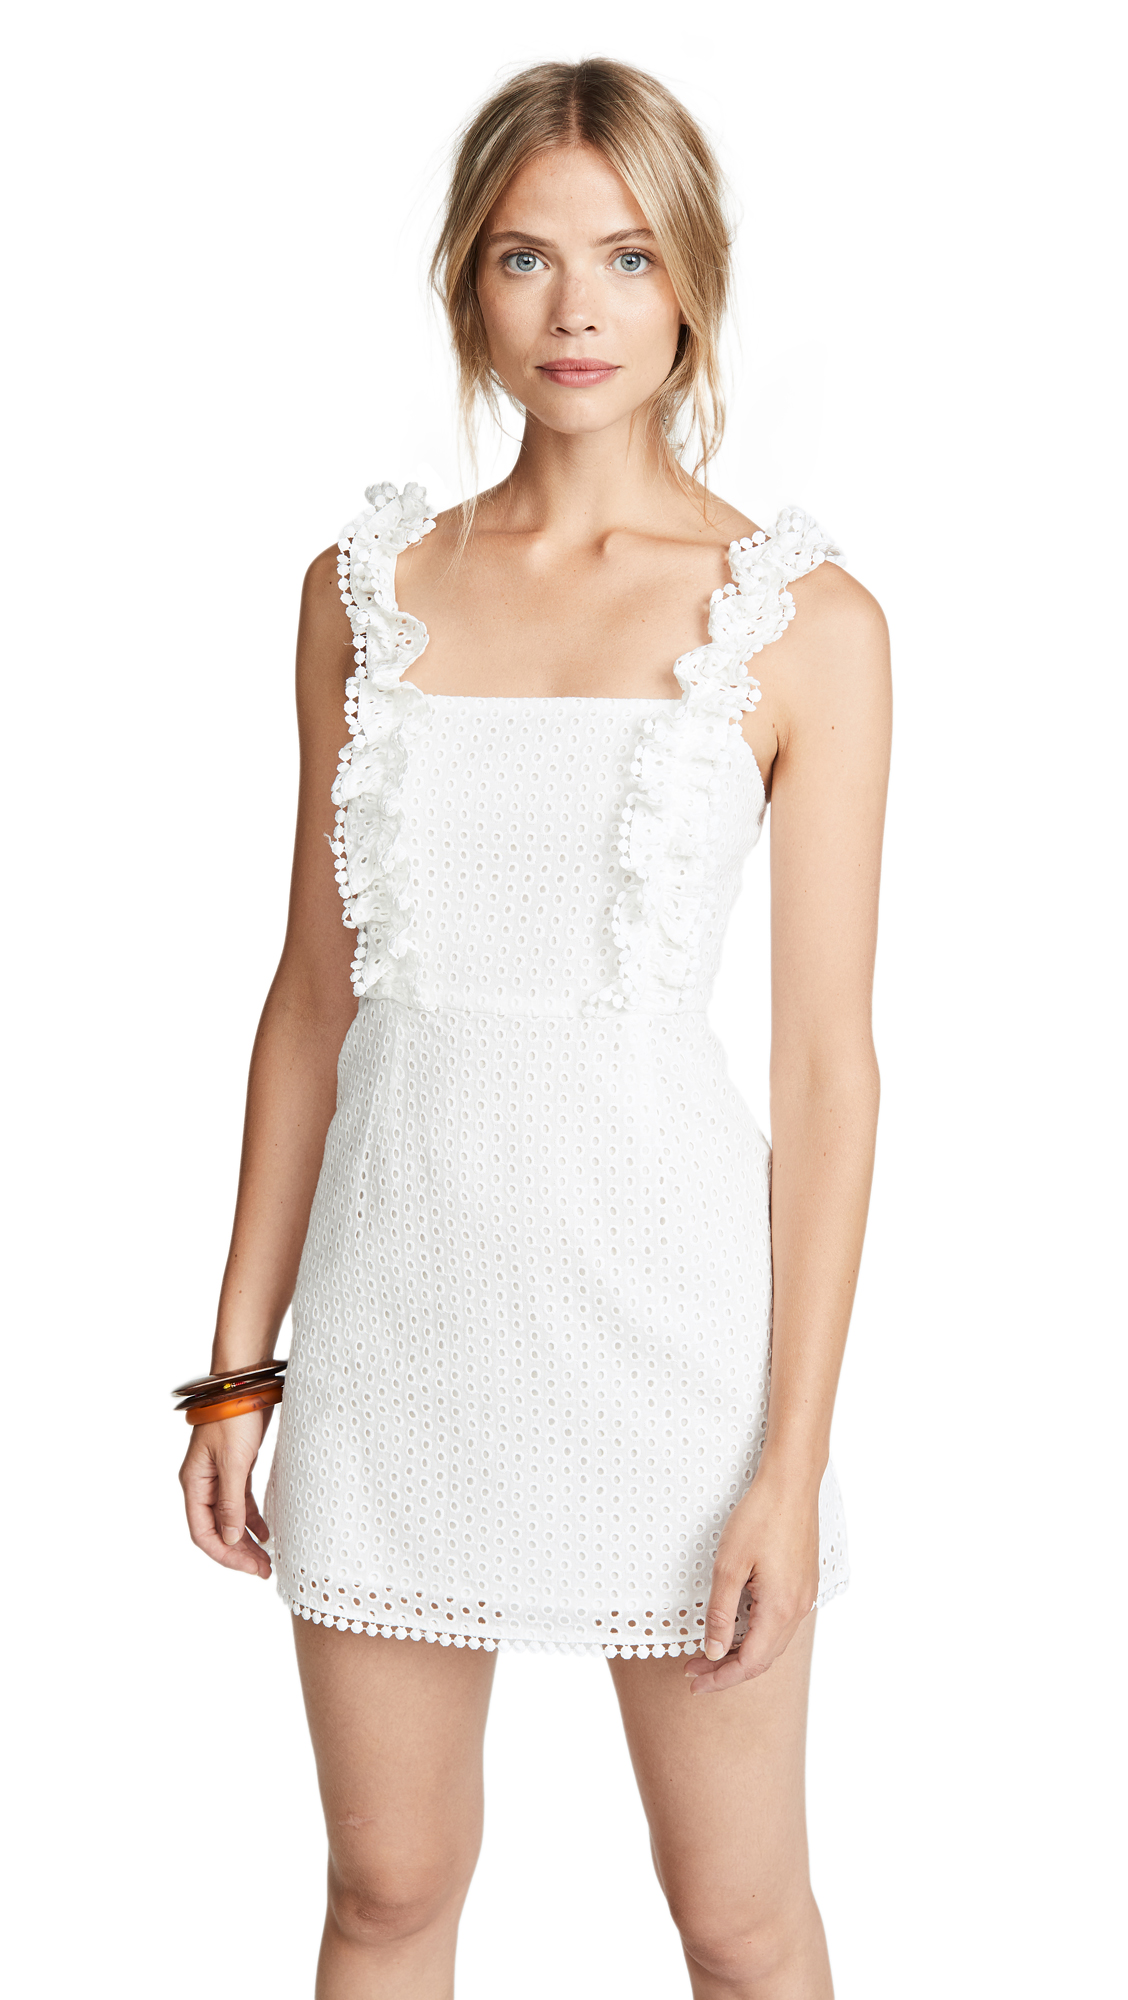 THE LINE UP Eyelet Dress in White